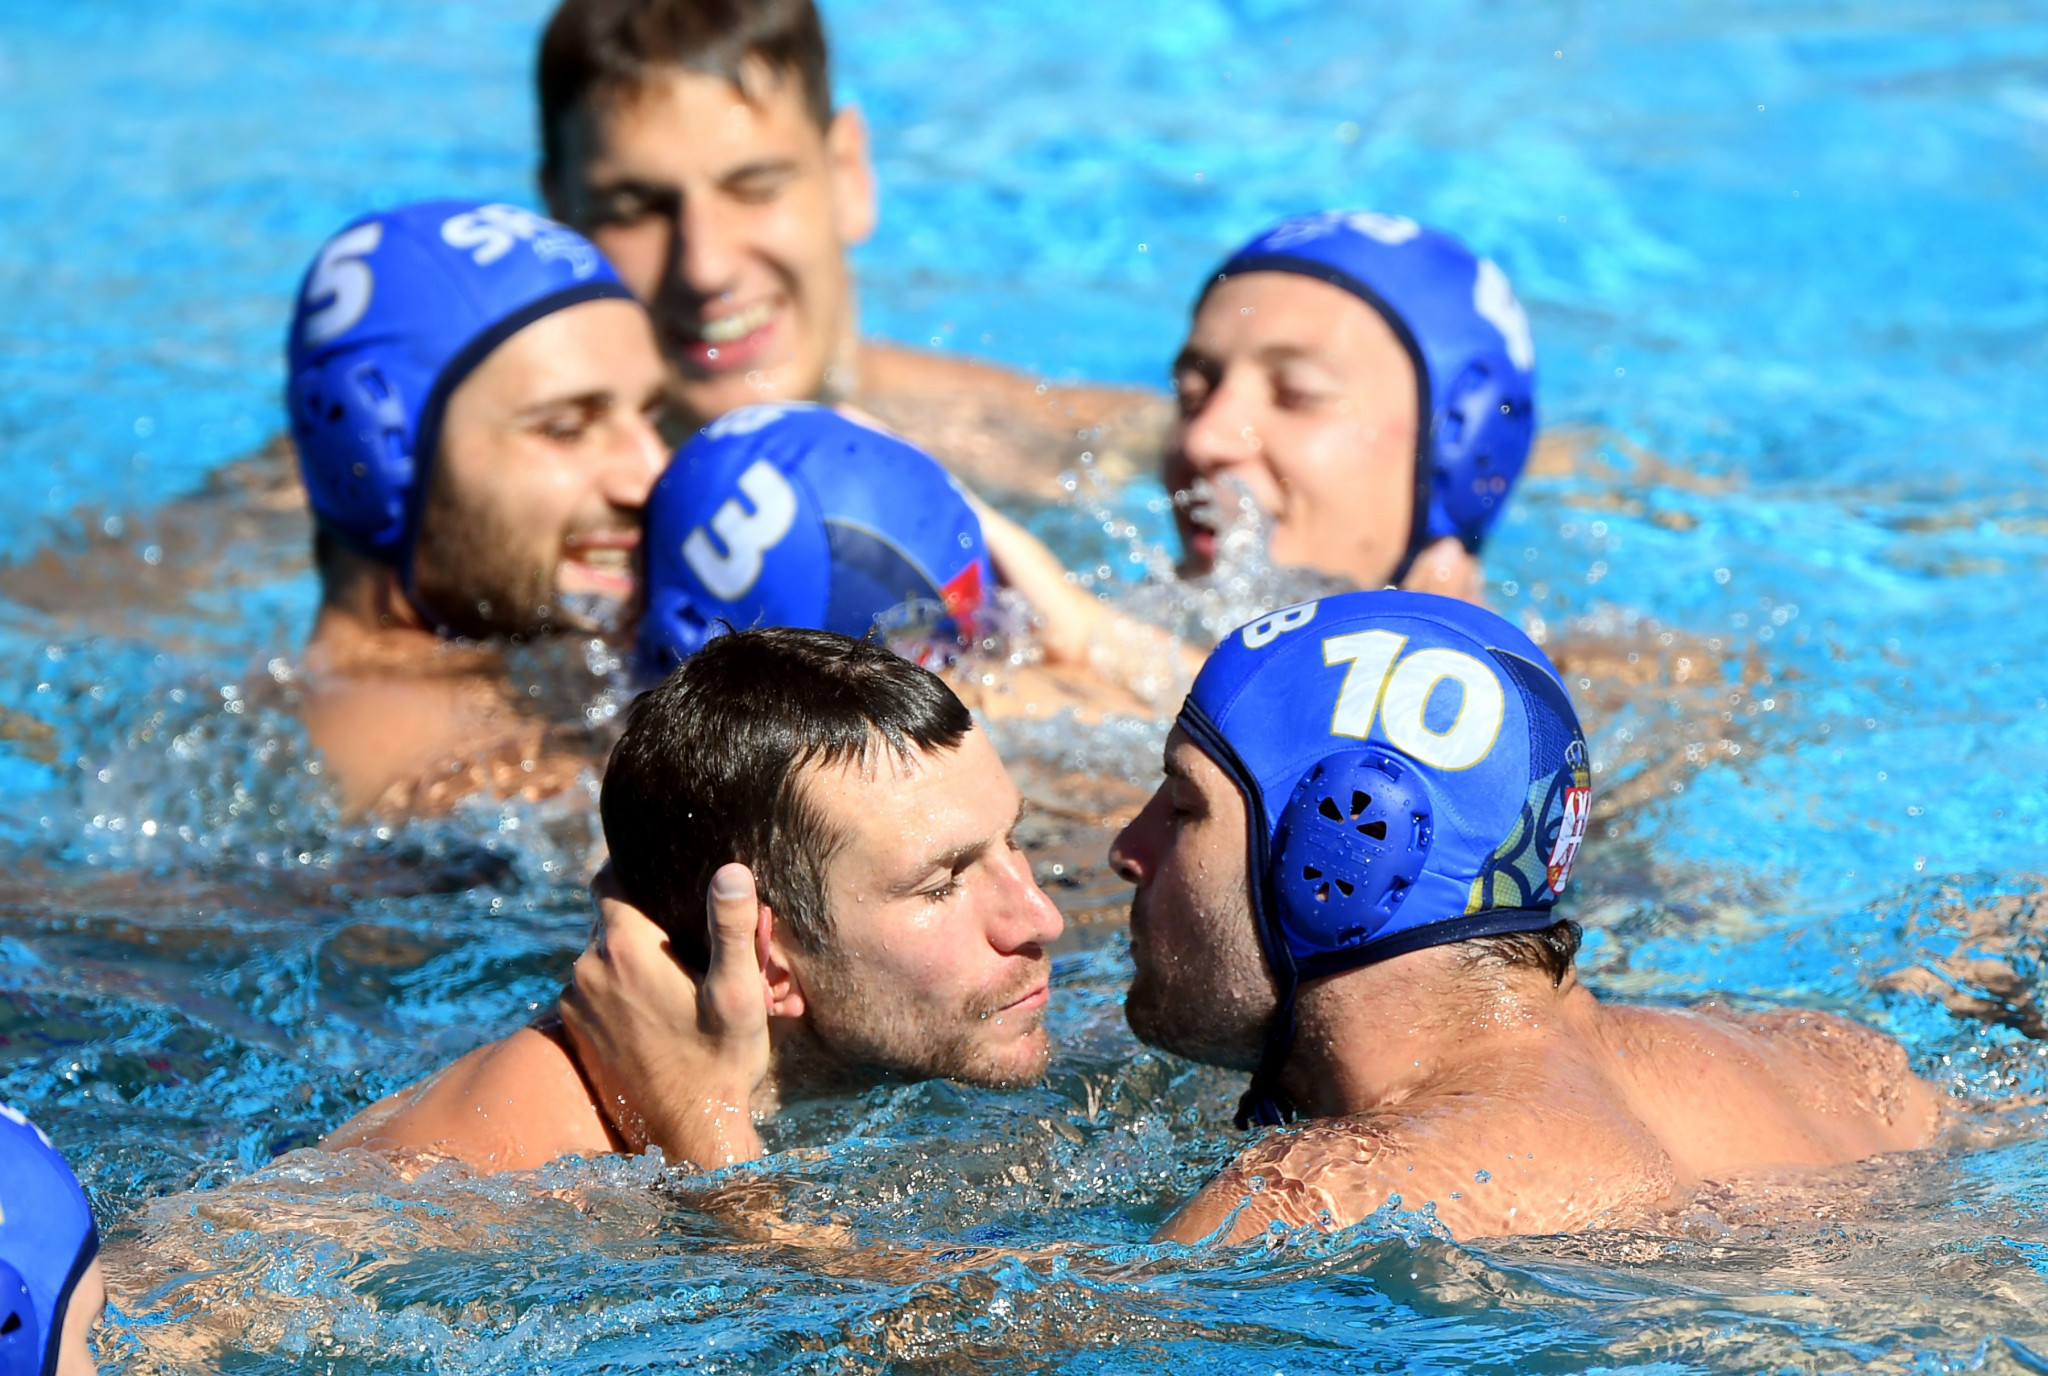 Serbia back in action and looking for a straightforward victory over Montenegro in European Water Polo World League